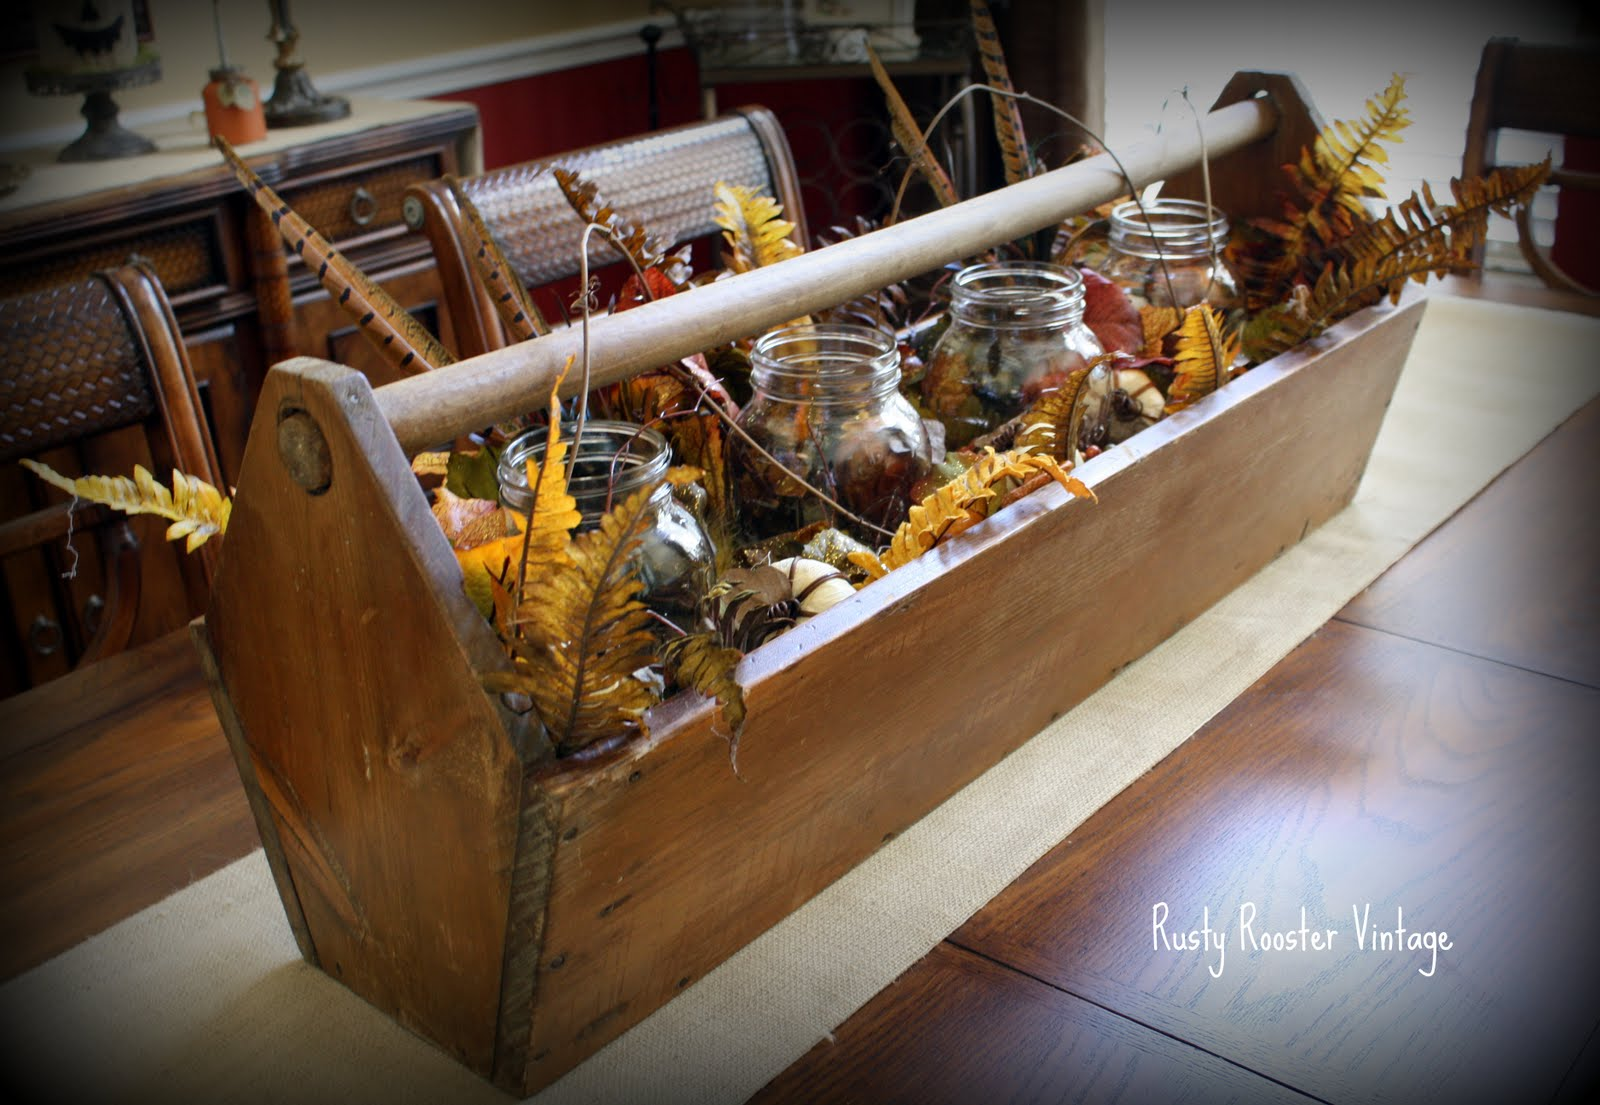 Rusty rooster vintage fall centerpiece before and after